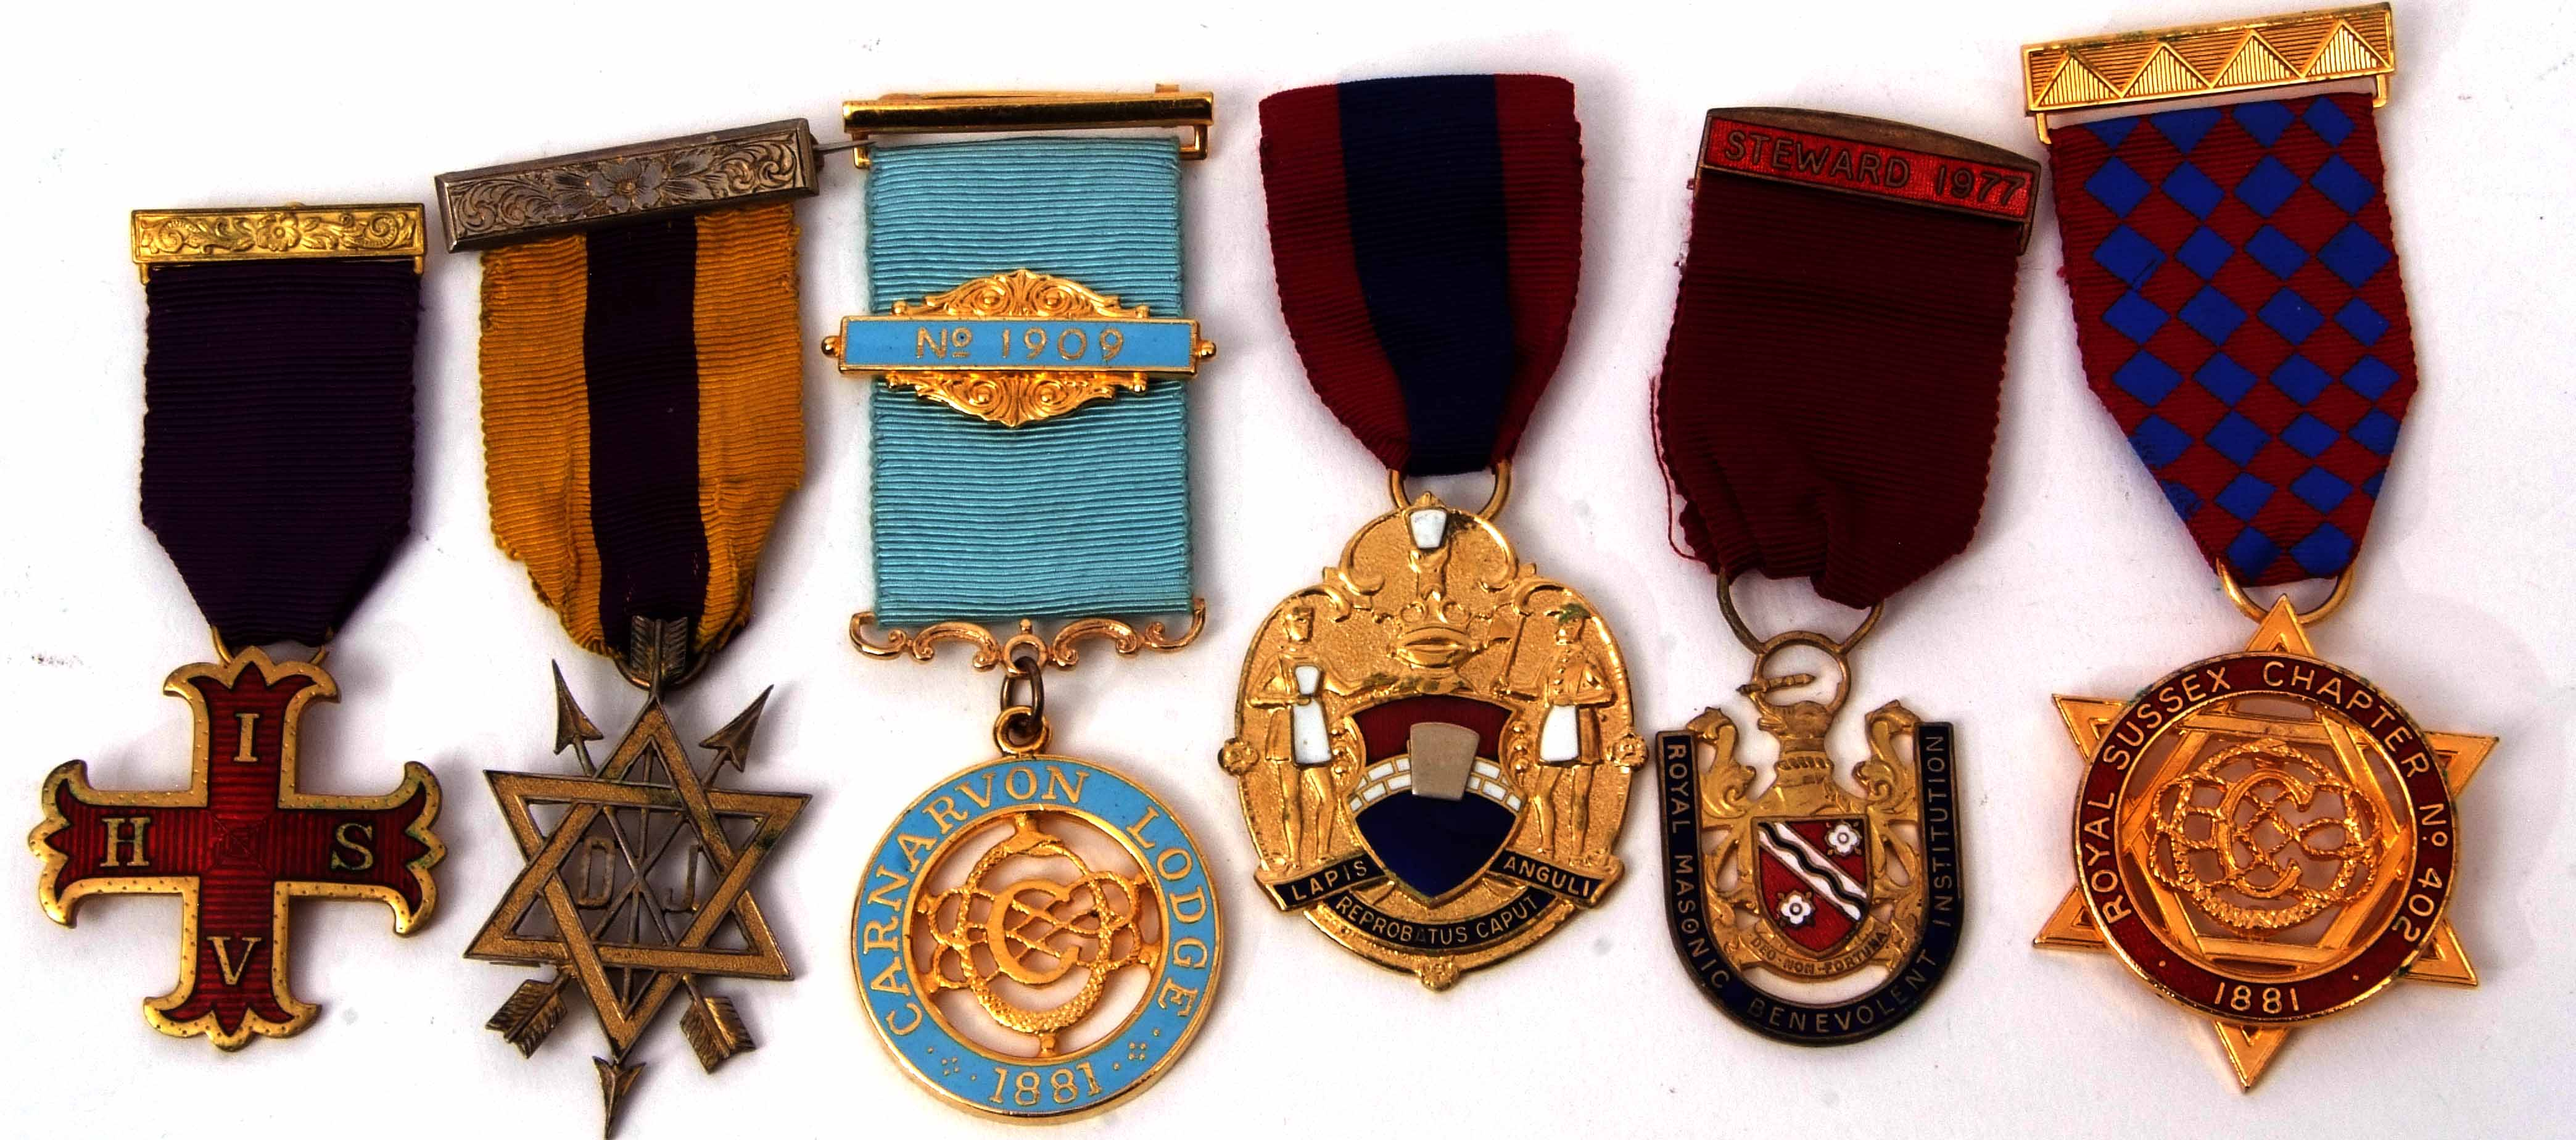 Lot 585 - Mixed Lot: six various base metal Masonic jewels including Order of the Secret Monitor, Caernarvon